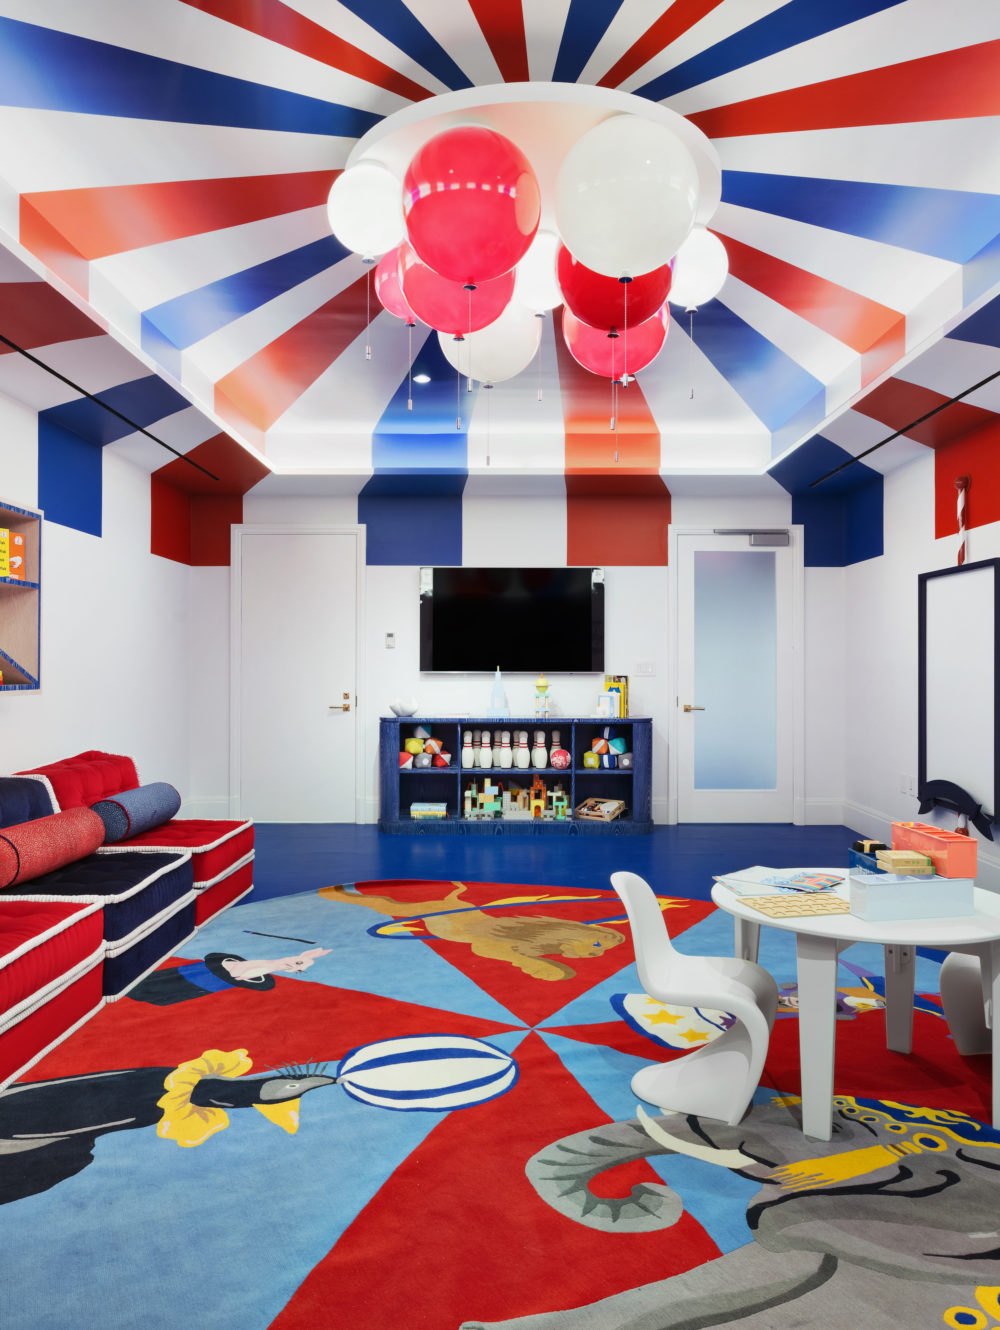 1010 Park Avenue NYC kids playroom with a colorful circus themed area includes activity boards and wall-mounted cubby.